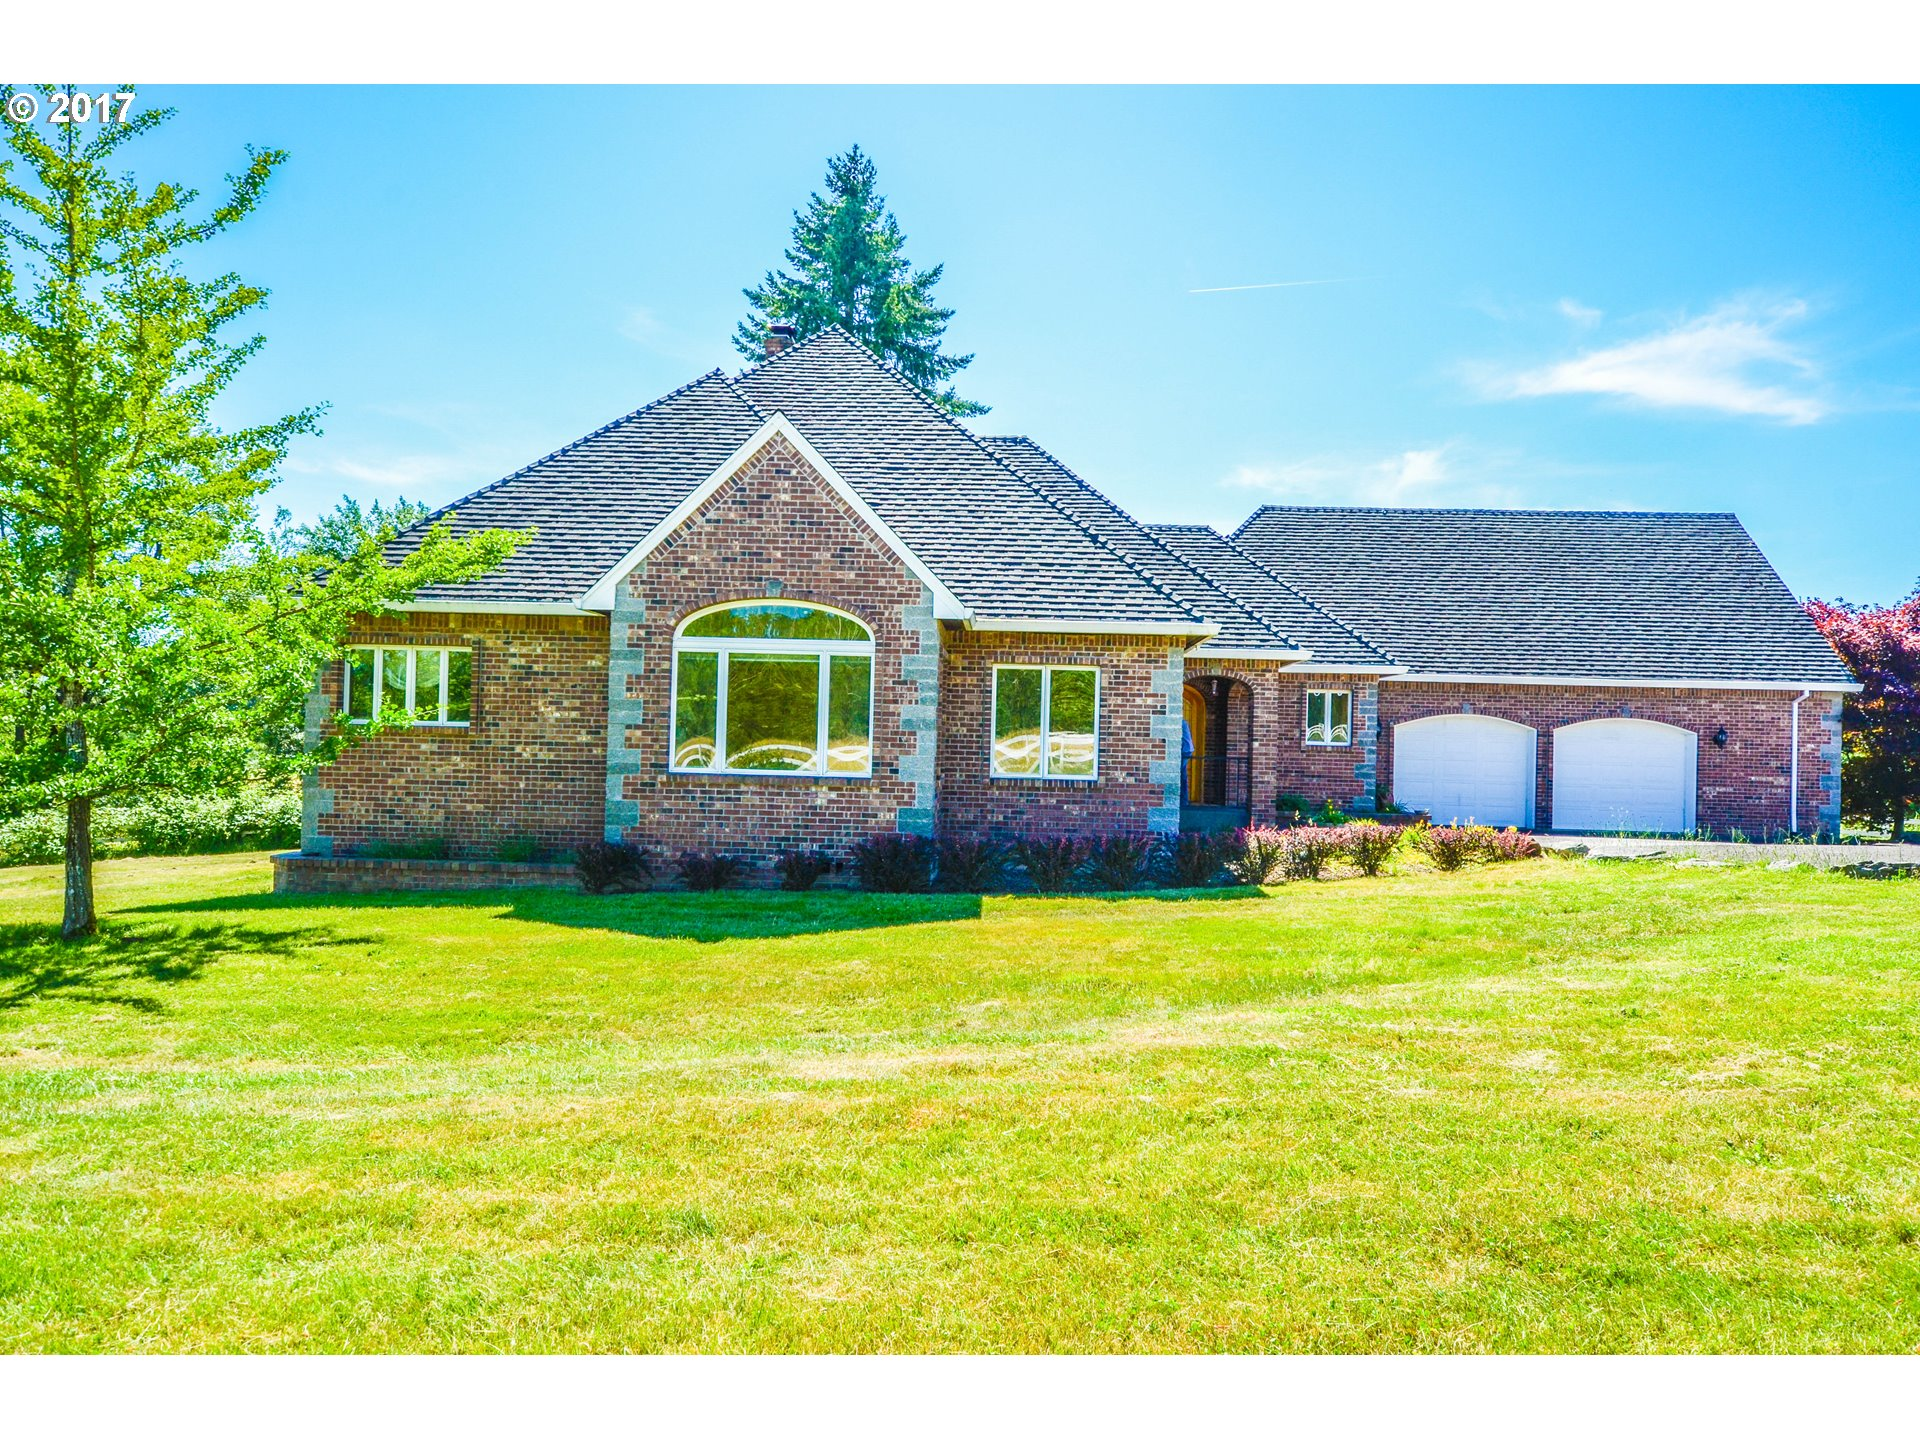 20225 S MAY RD Oregon City, OR 97045 - MLS #: 17588437